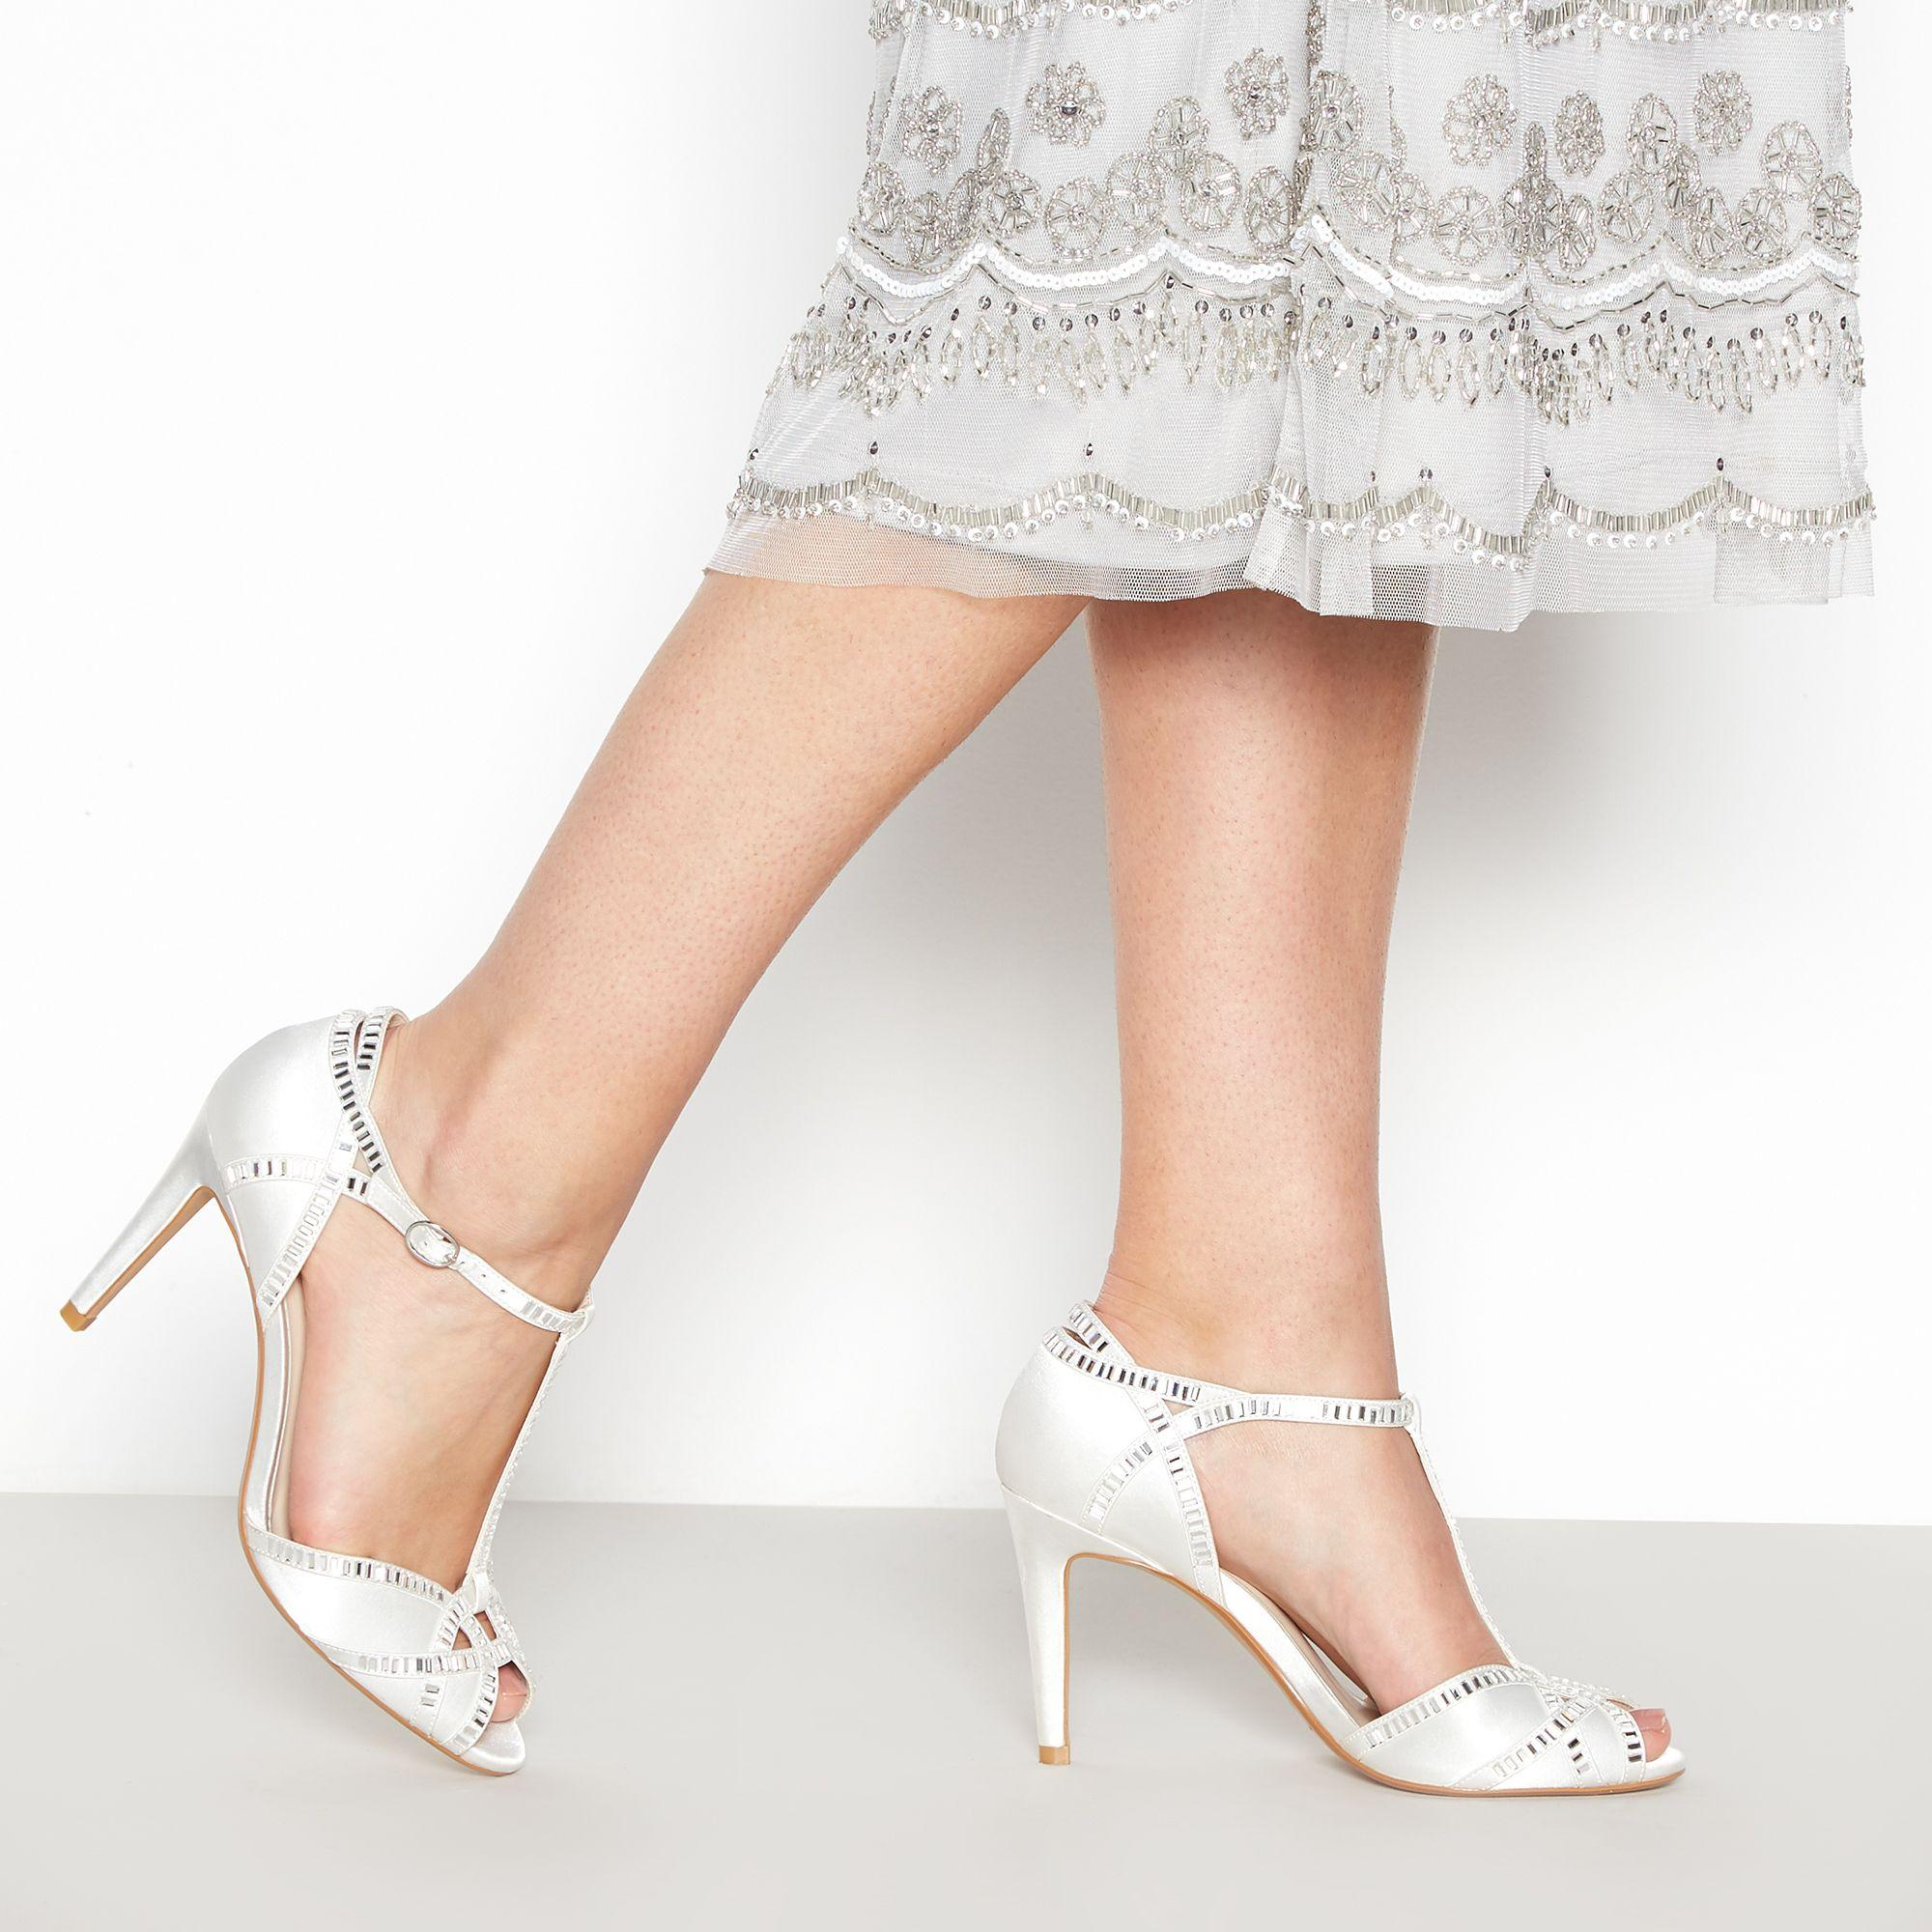 47060485c1e Jenny Packham. Women s White Ivory  pasha  High Stiletto Heel Ankle Strap  Sandals